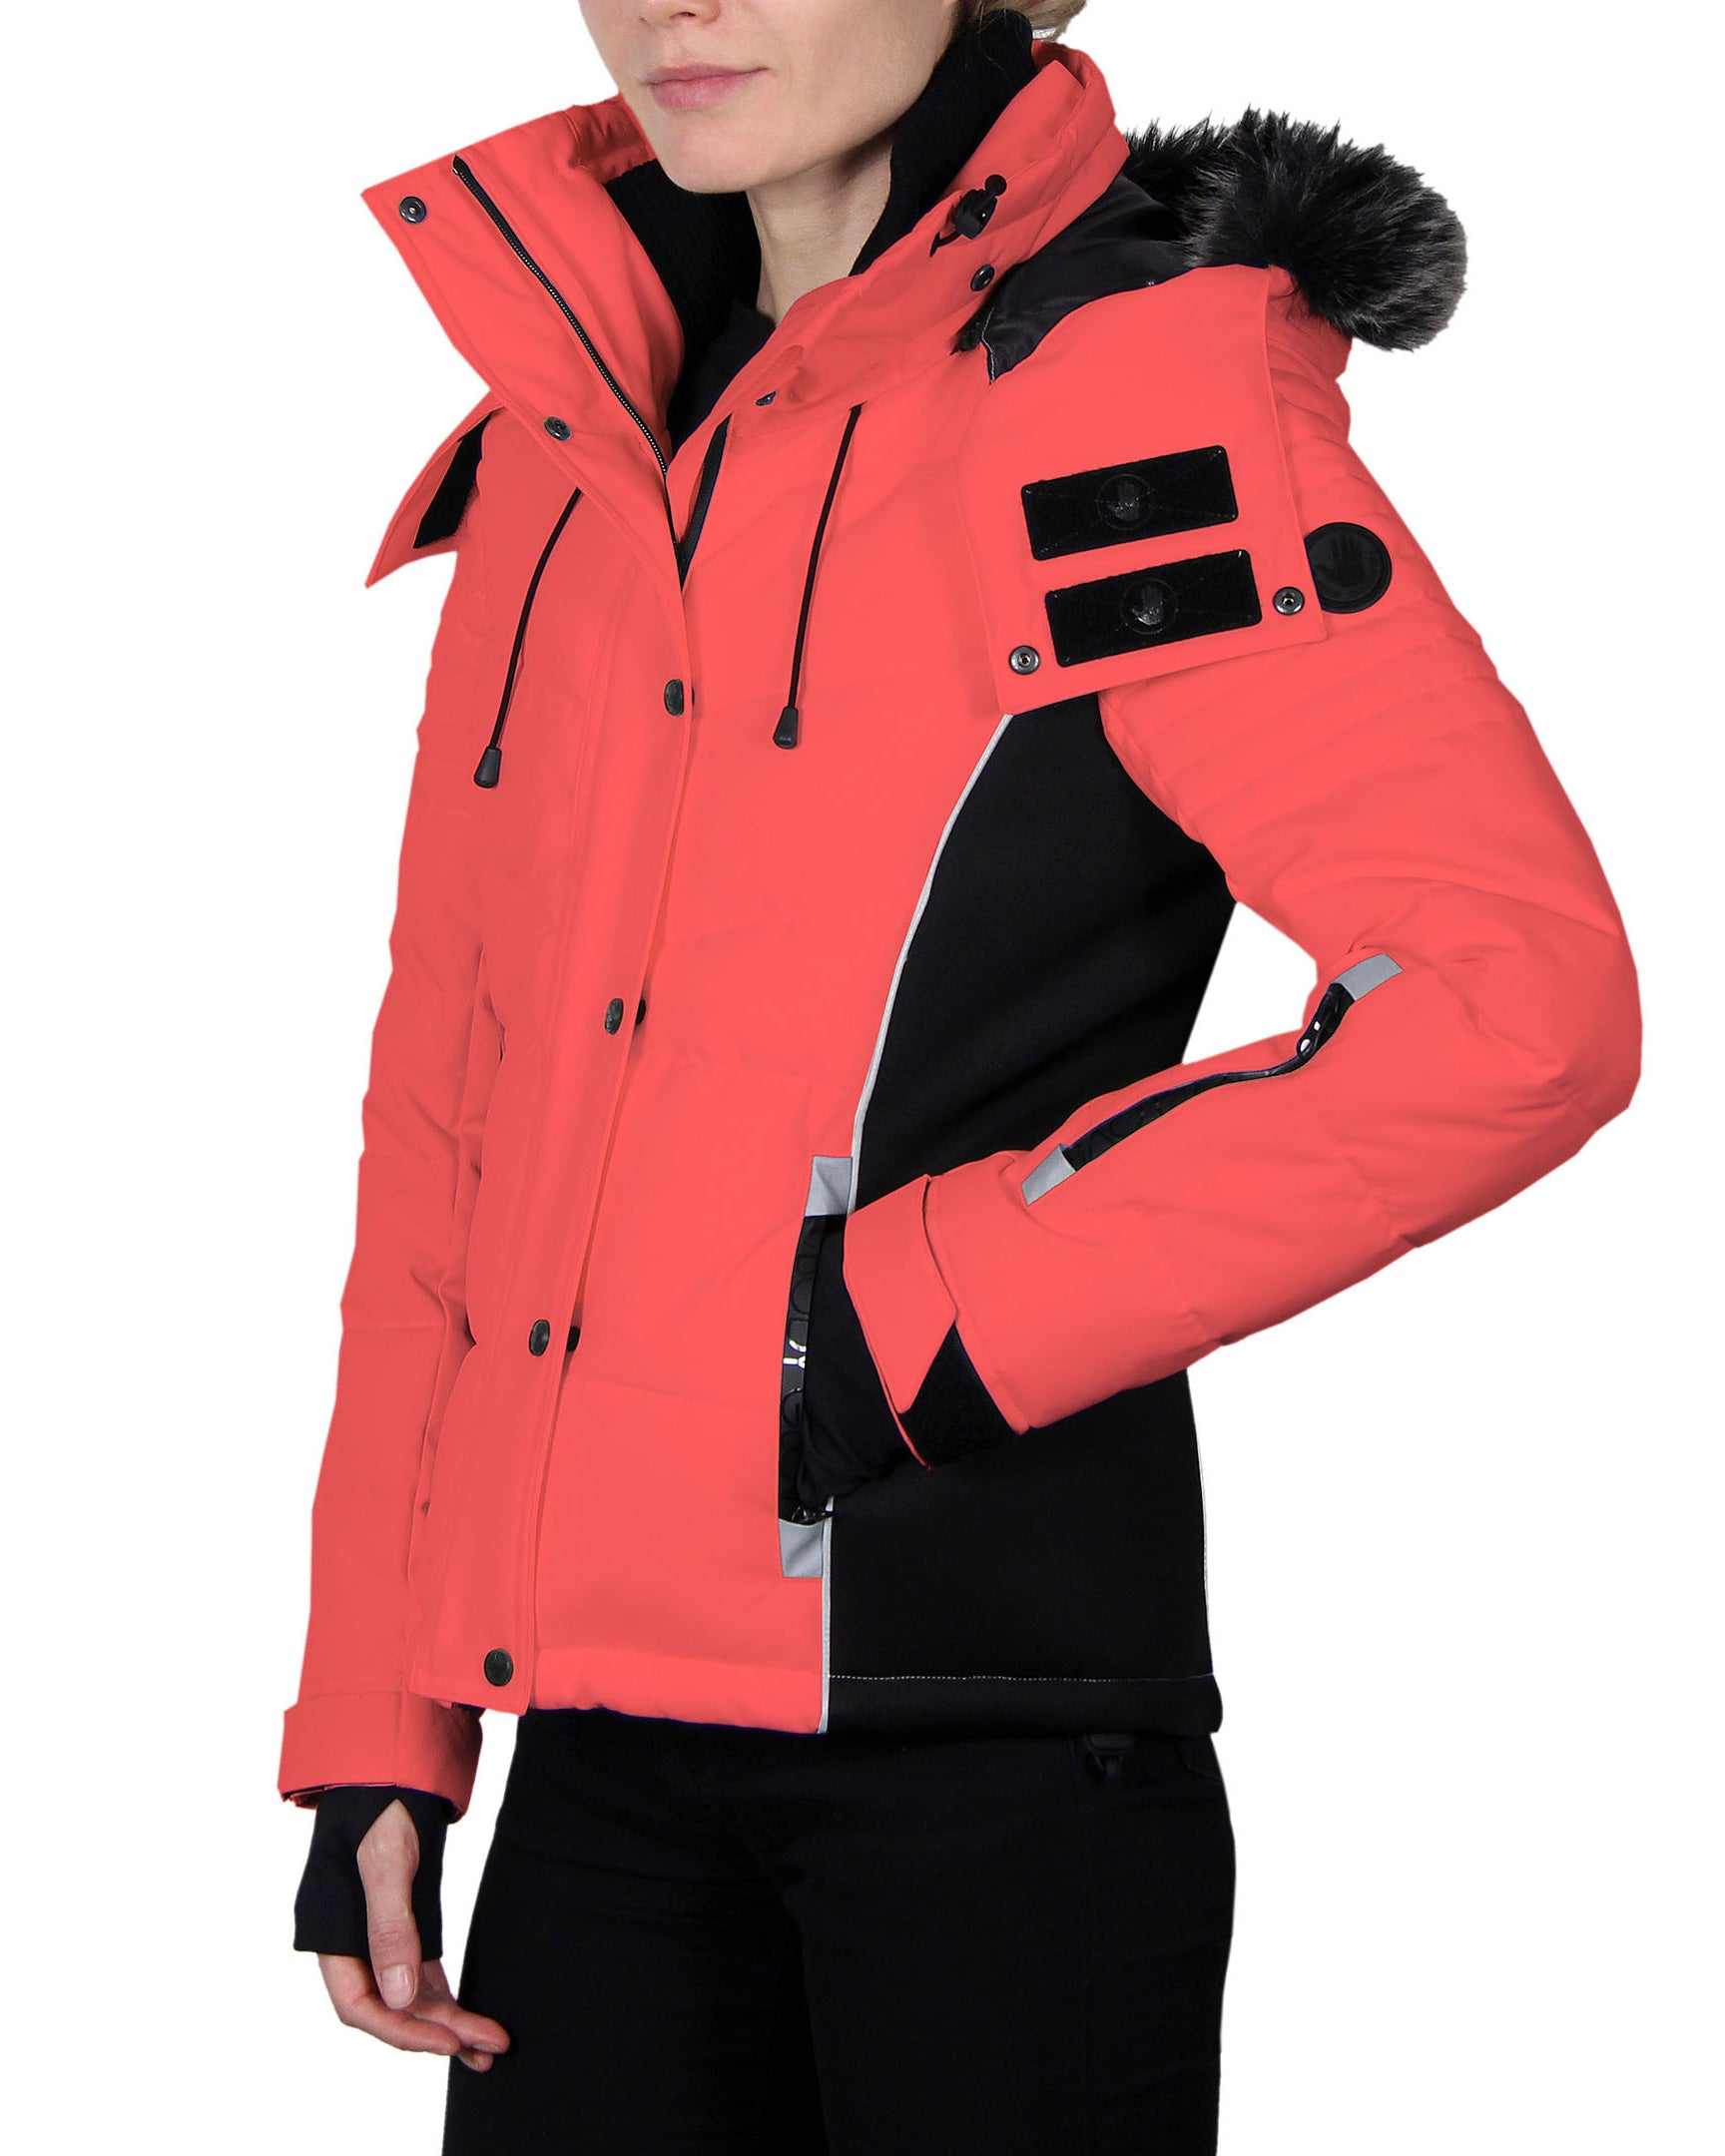 Women's Snow-Sports Jacket - Bright Vivo